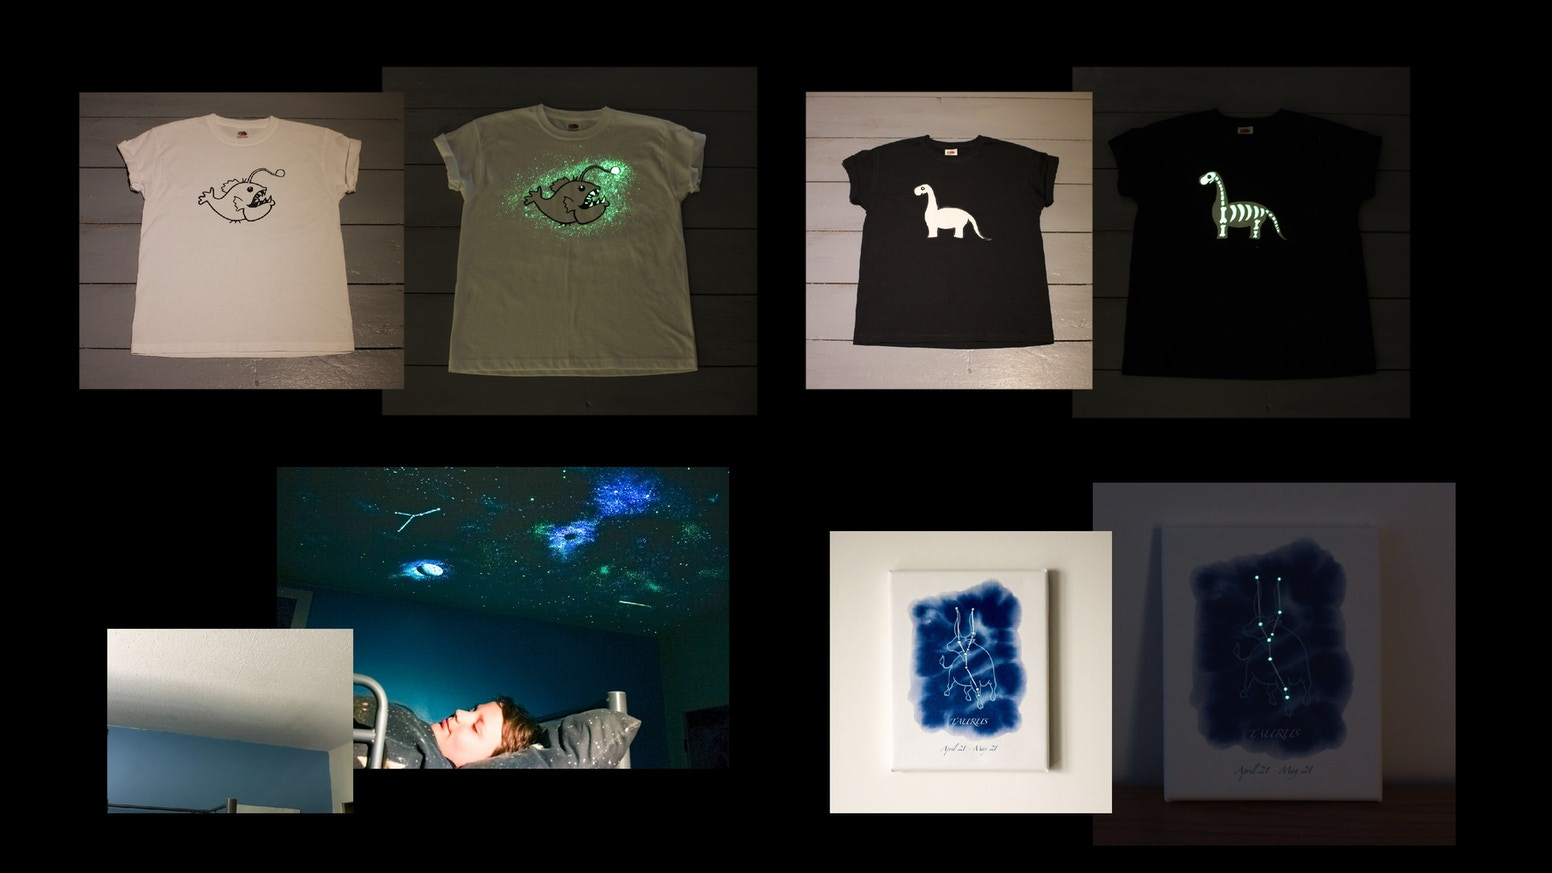 Glow In The Dark Art Appears At Night On Ceilings T Shirts By Zoe